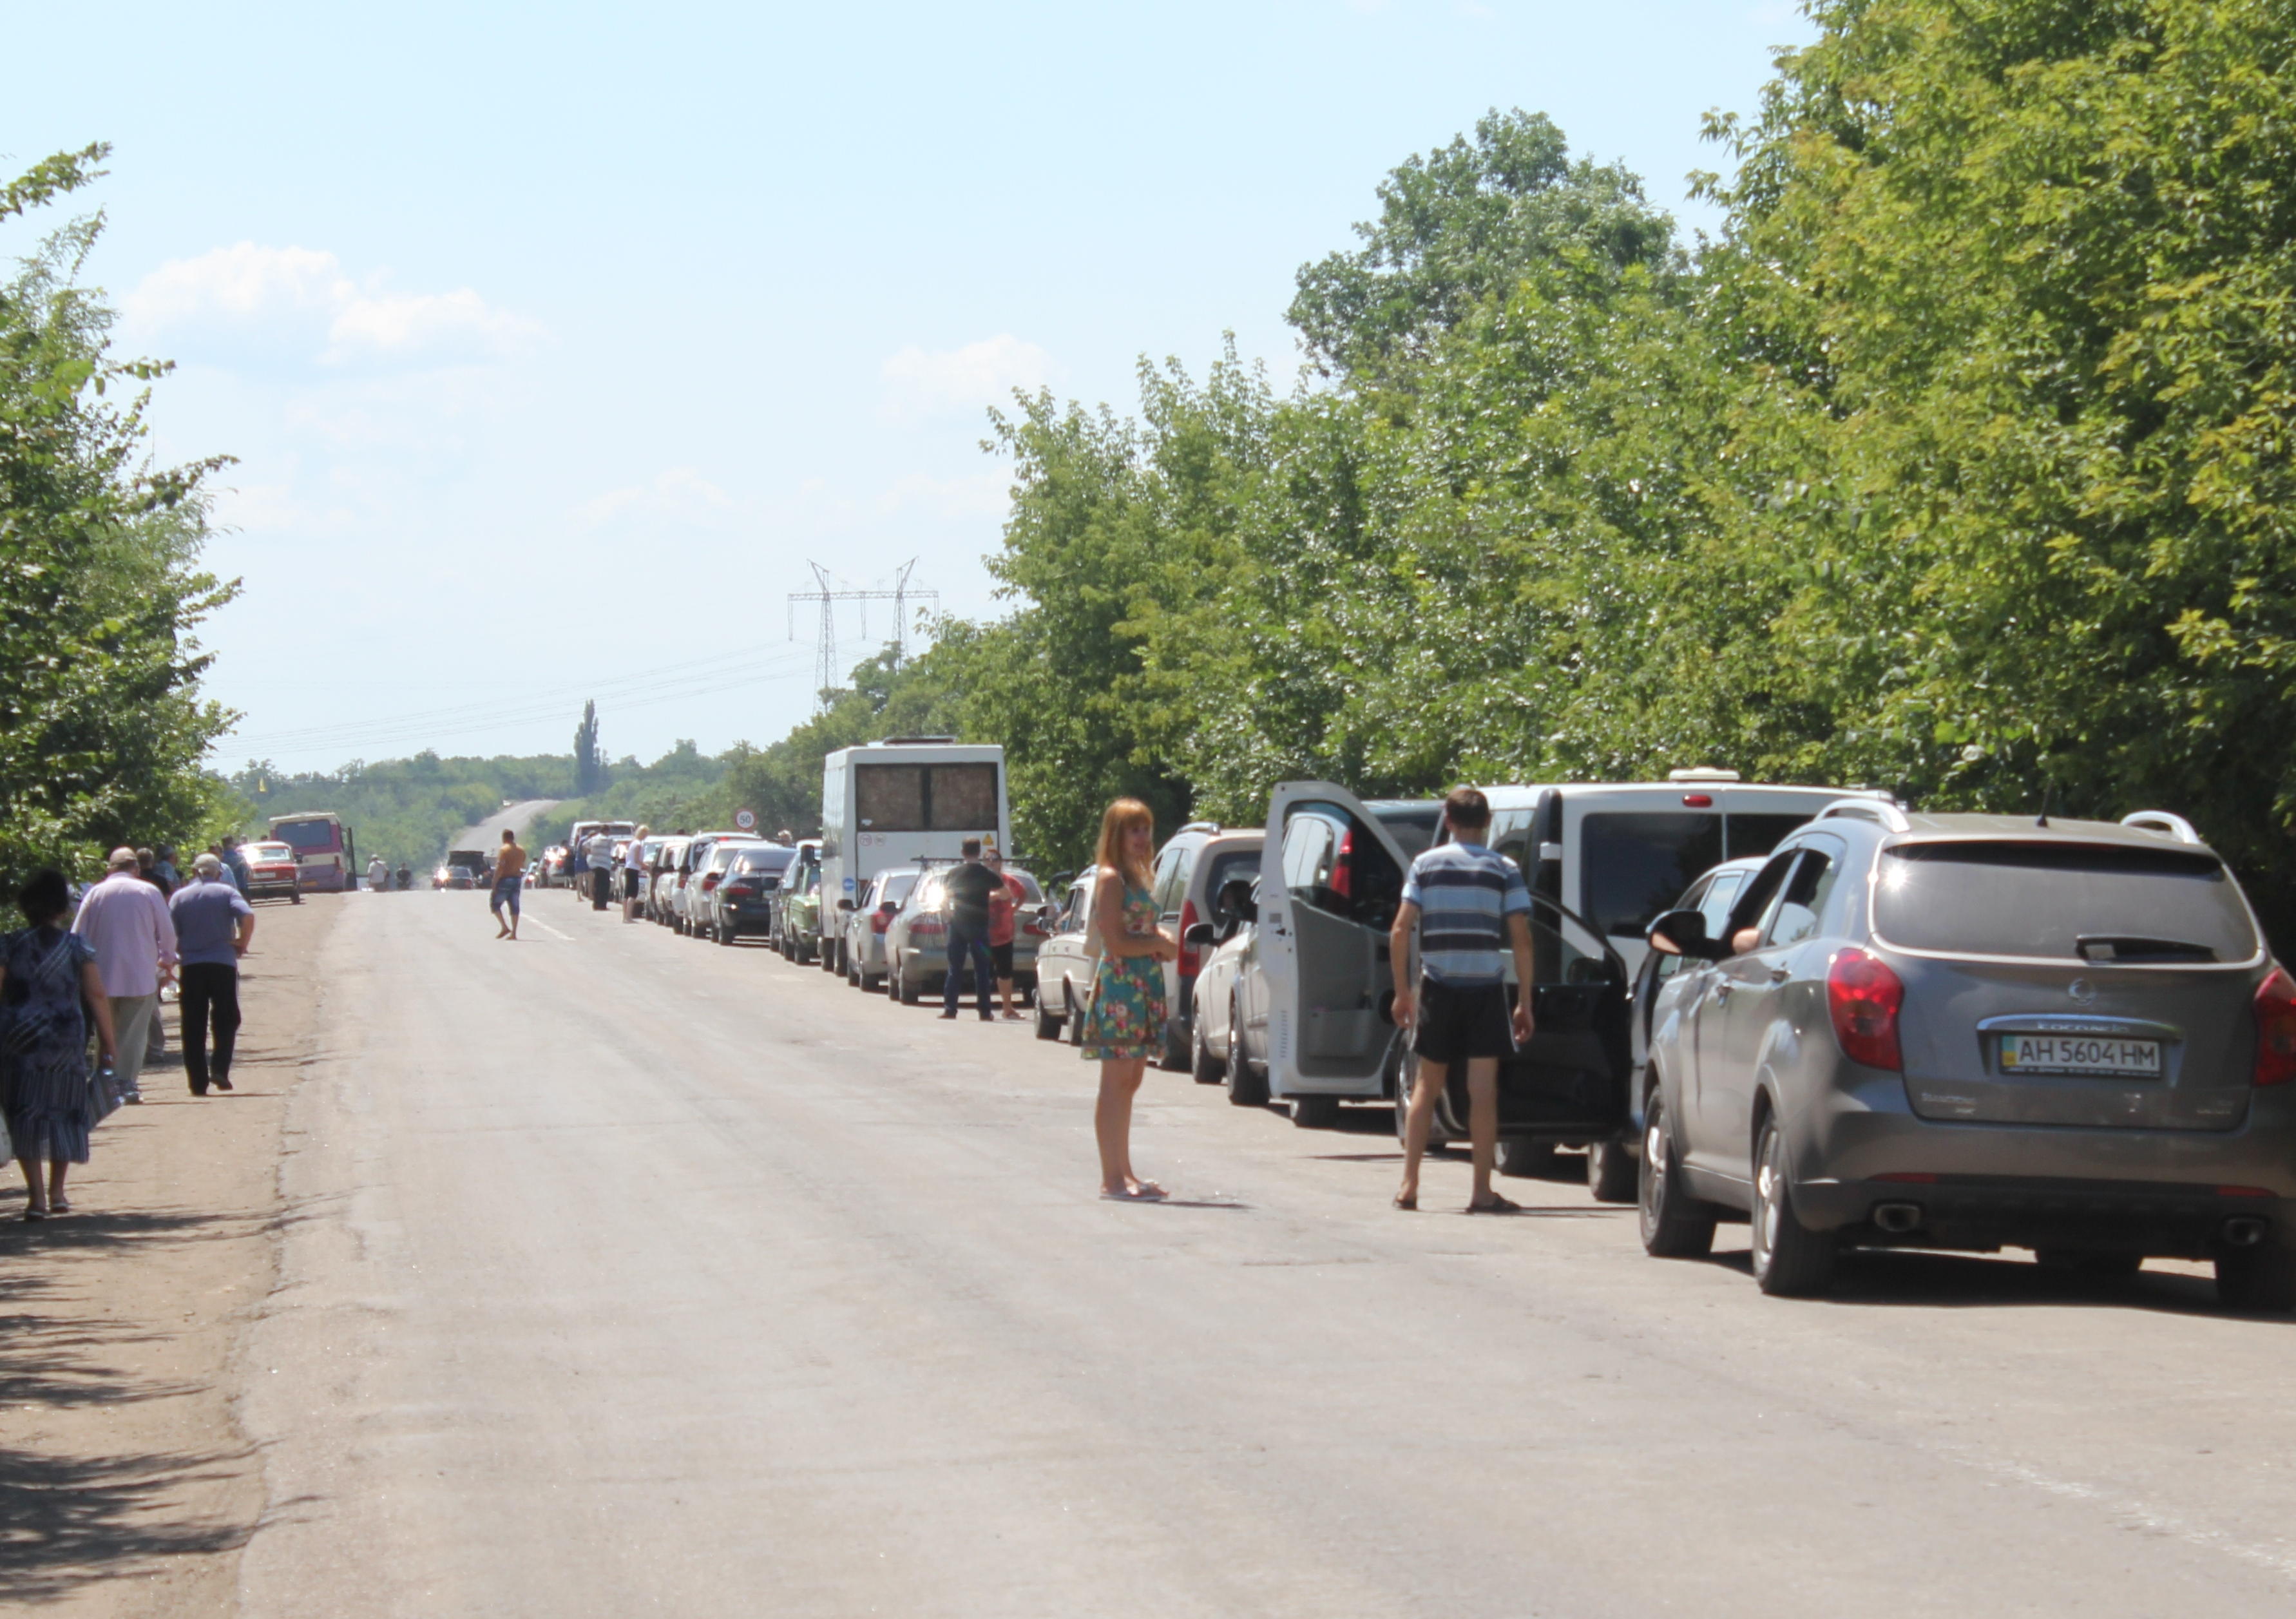 Cars line up at the government checkpoint near Artemivsk town in eastern Ukraine. New government orders have made it harder for people and goods to cross from rebel-held to government-held areas.